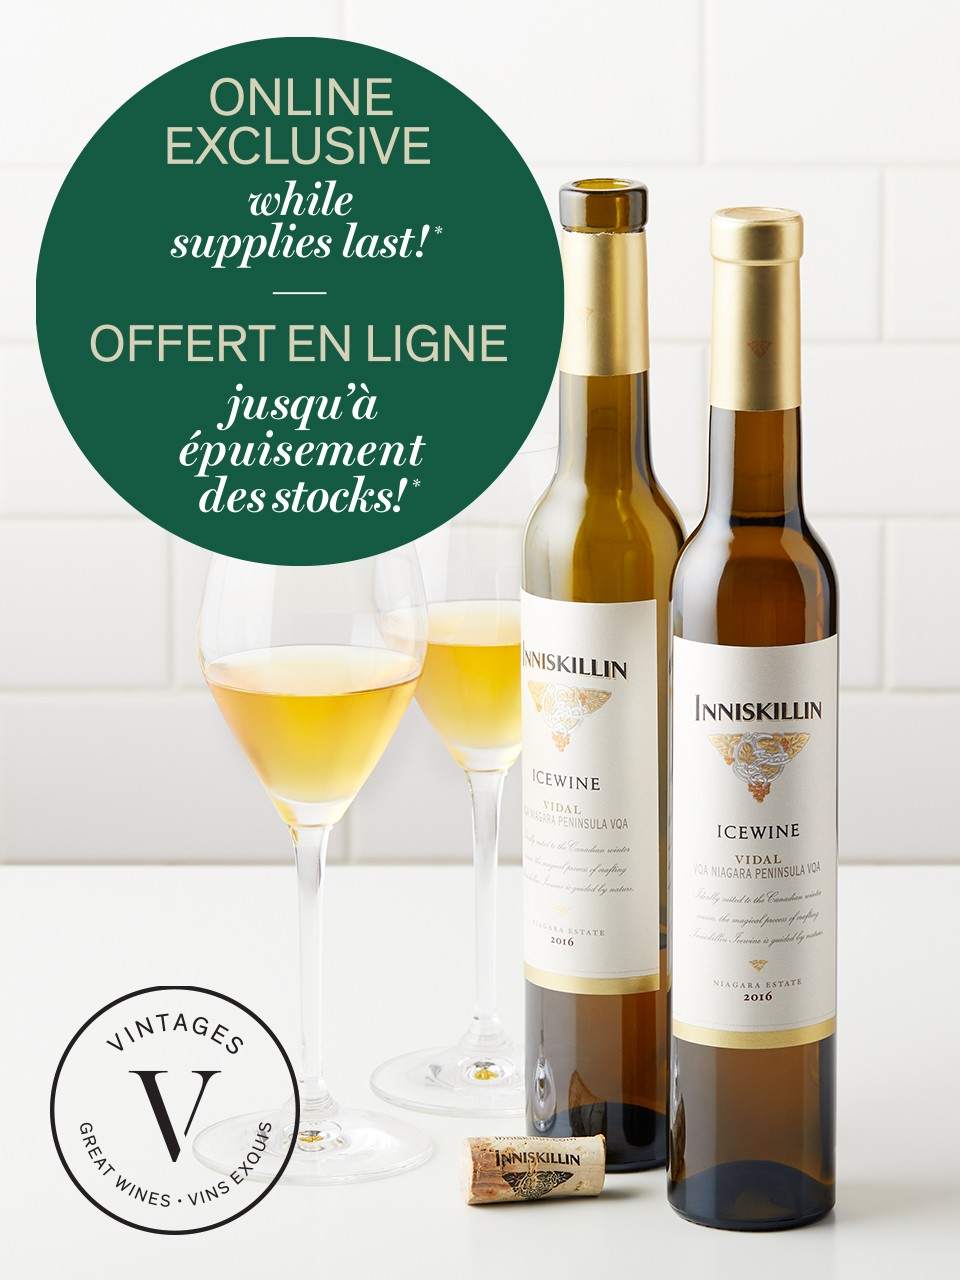 Image for Inniskillin Icewine (2x375) Icewine Glasses Offer from LCBO